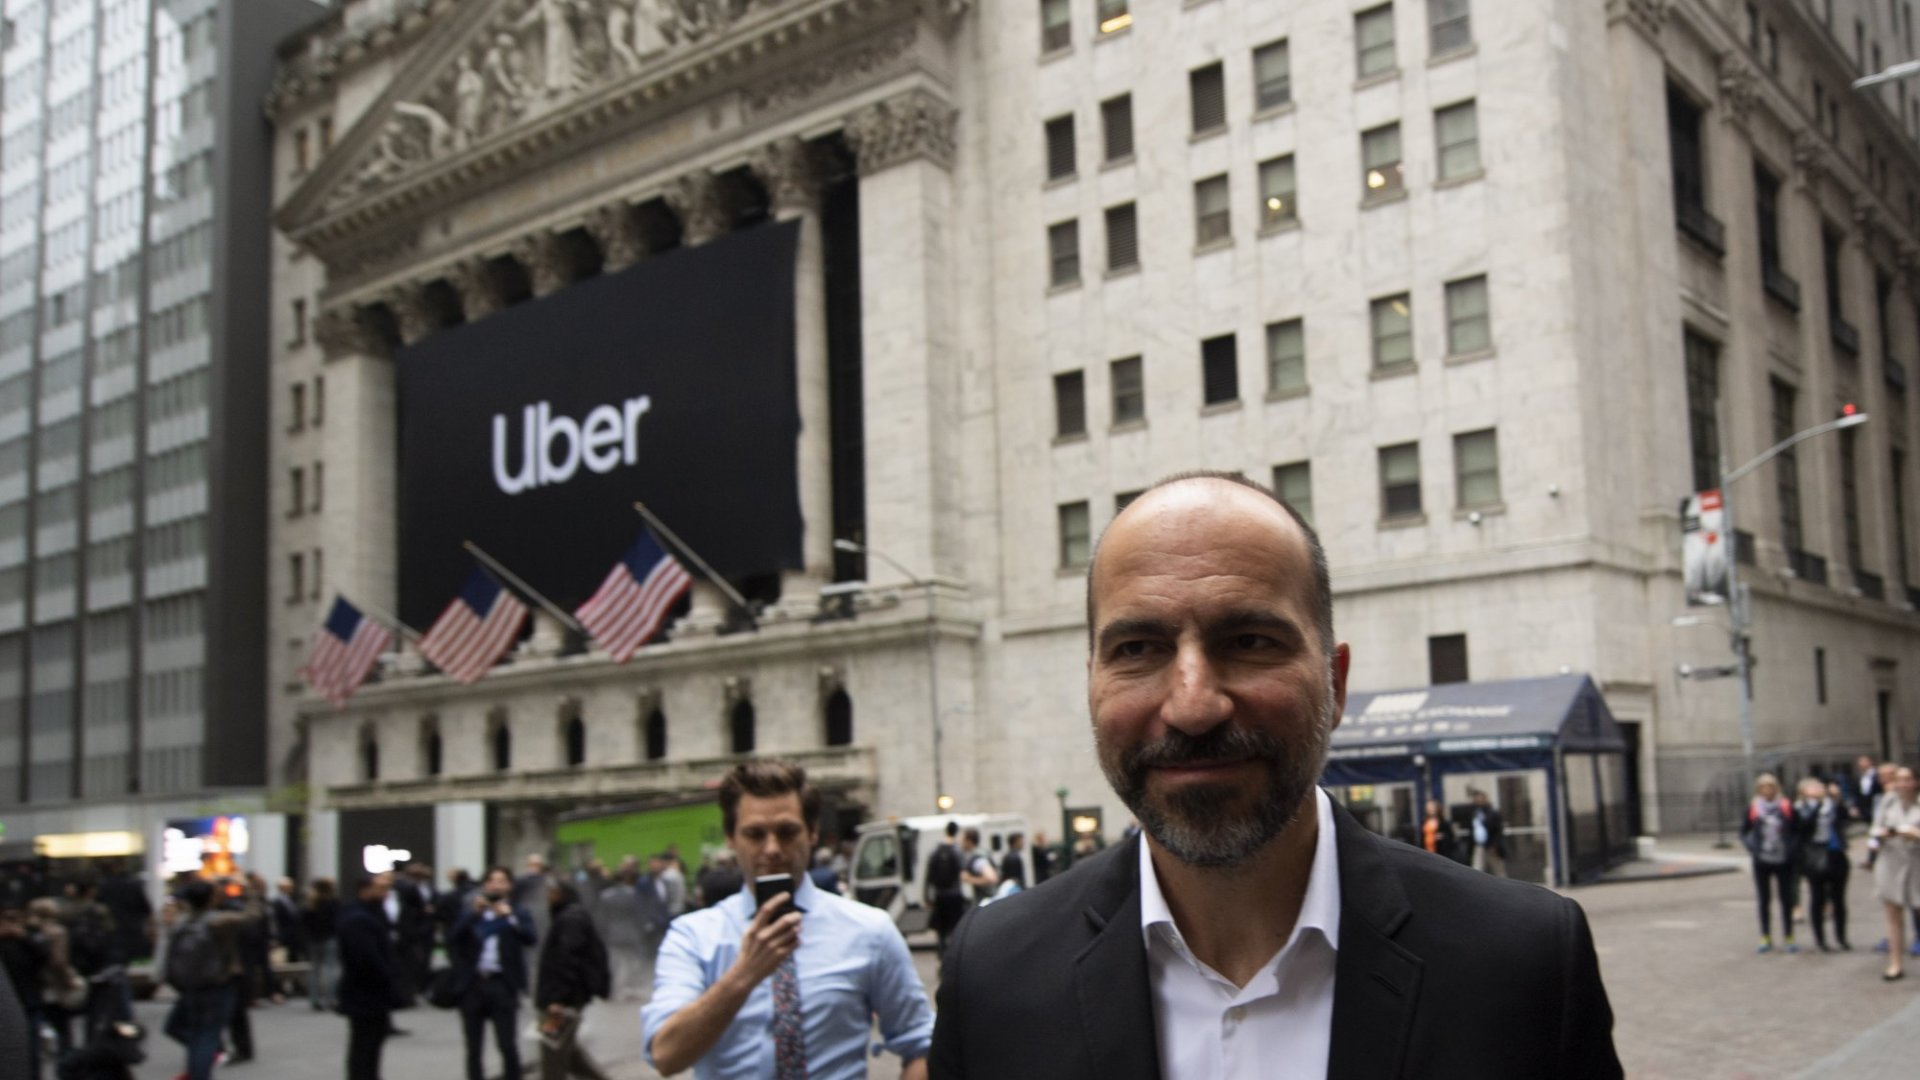 I Missed Out on $82 Million in Uber's IPO. Here's Why I Don't Regret It